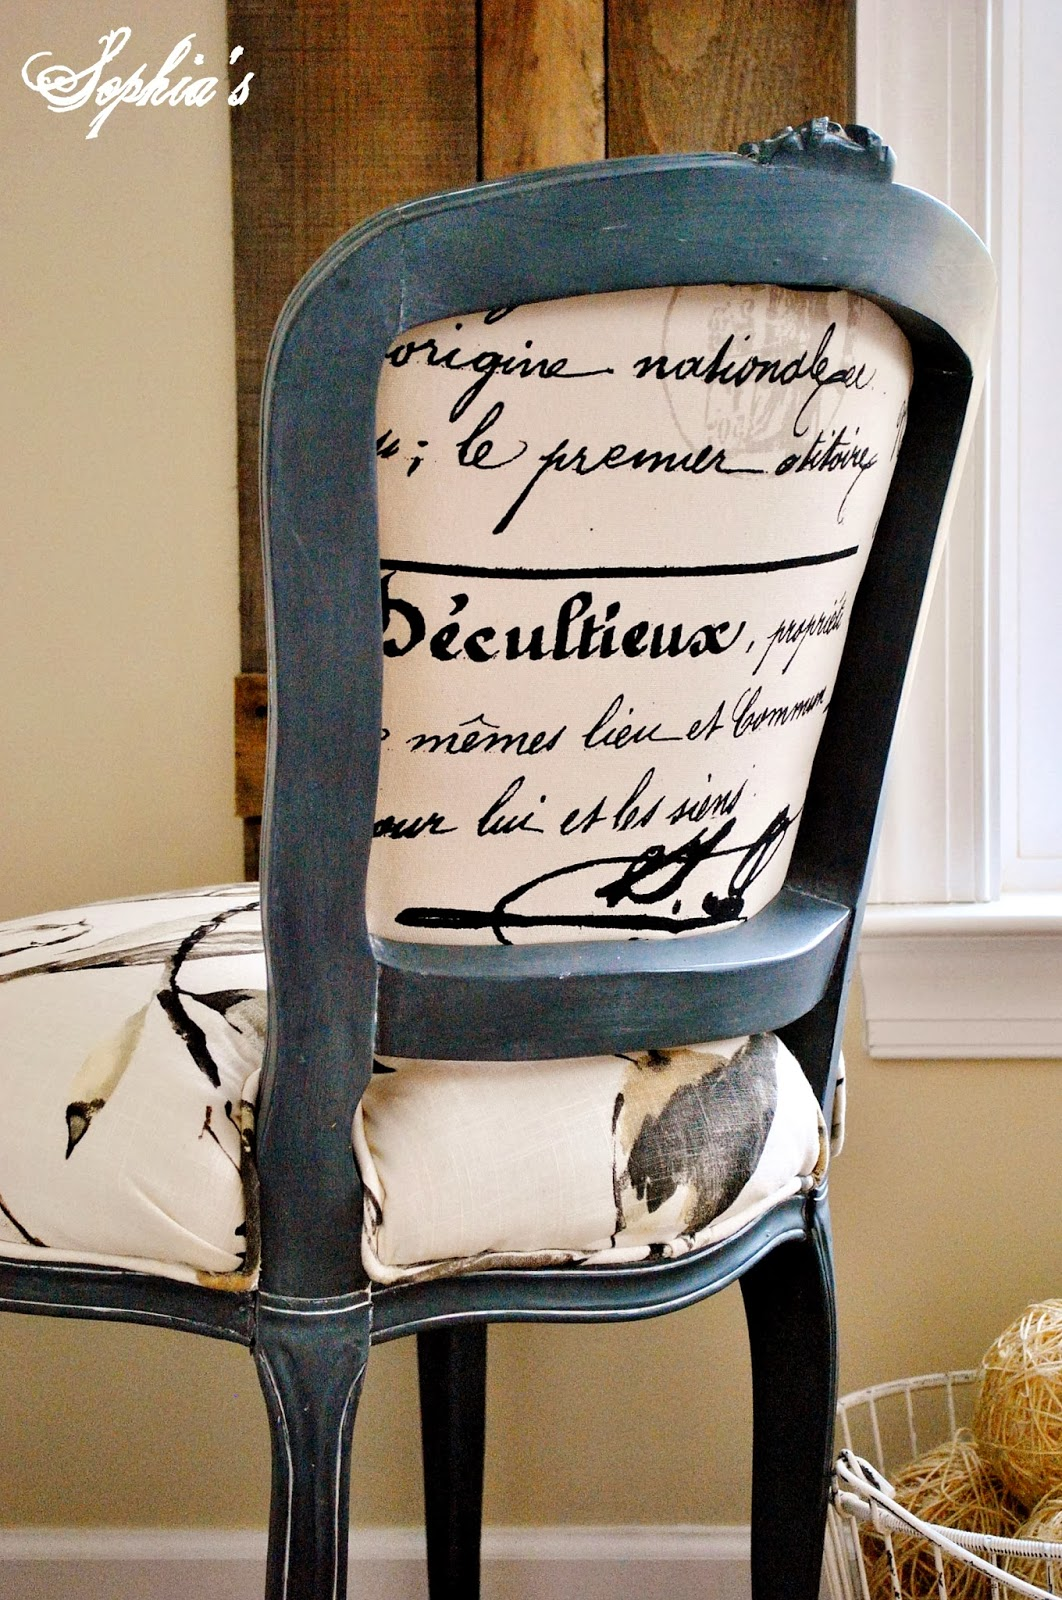 How to reupholster a louis chair - As I Mentioned Reupholstering Is A Pretty Time Consuming Project And It Requires Some Patience But If You Ve Shopped Around For Furniture Lately